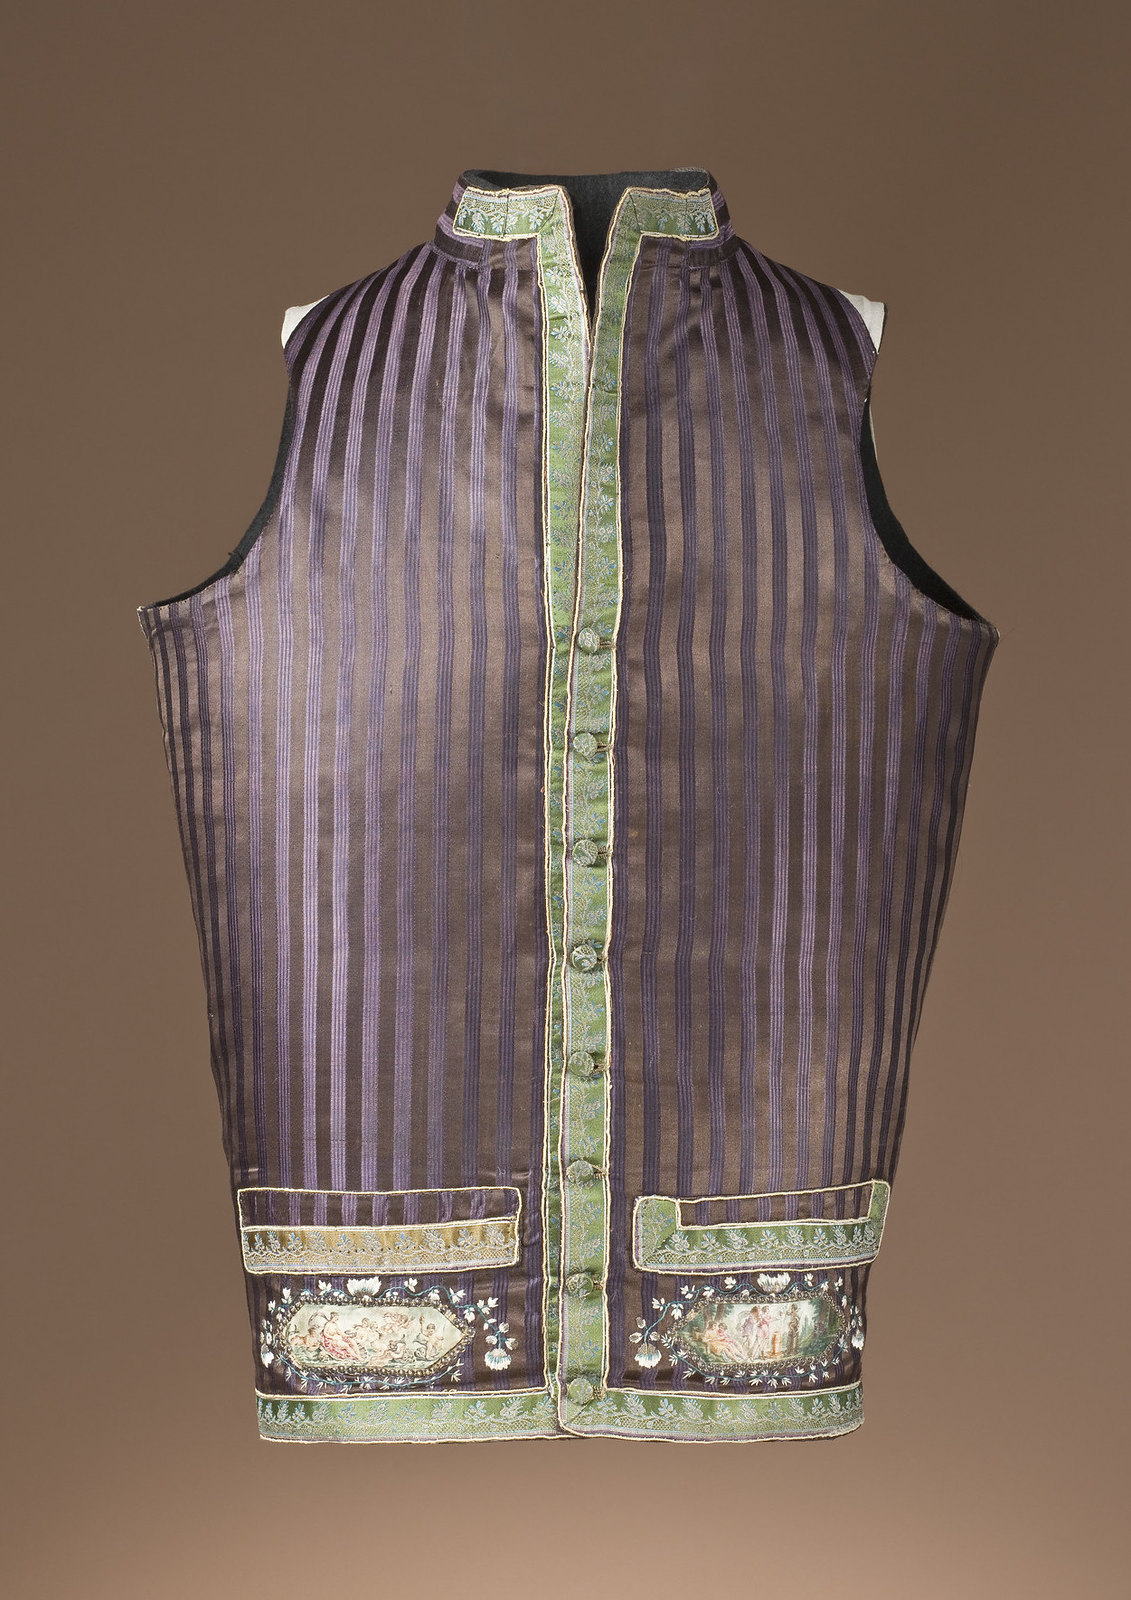 1790. Europe. Silk satin with silver-metallic and polychrome-silk thread and silver sequins. LACMA